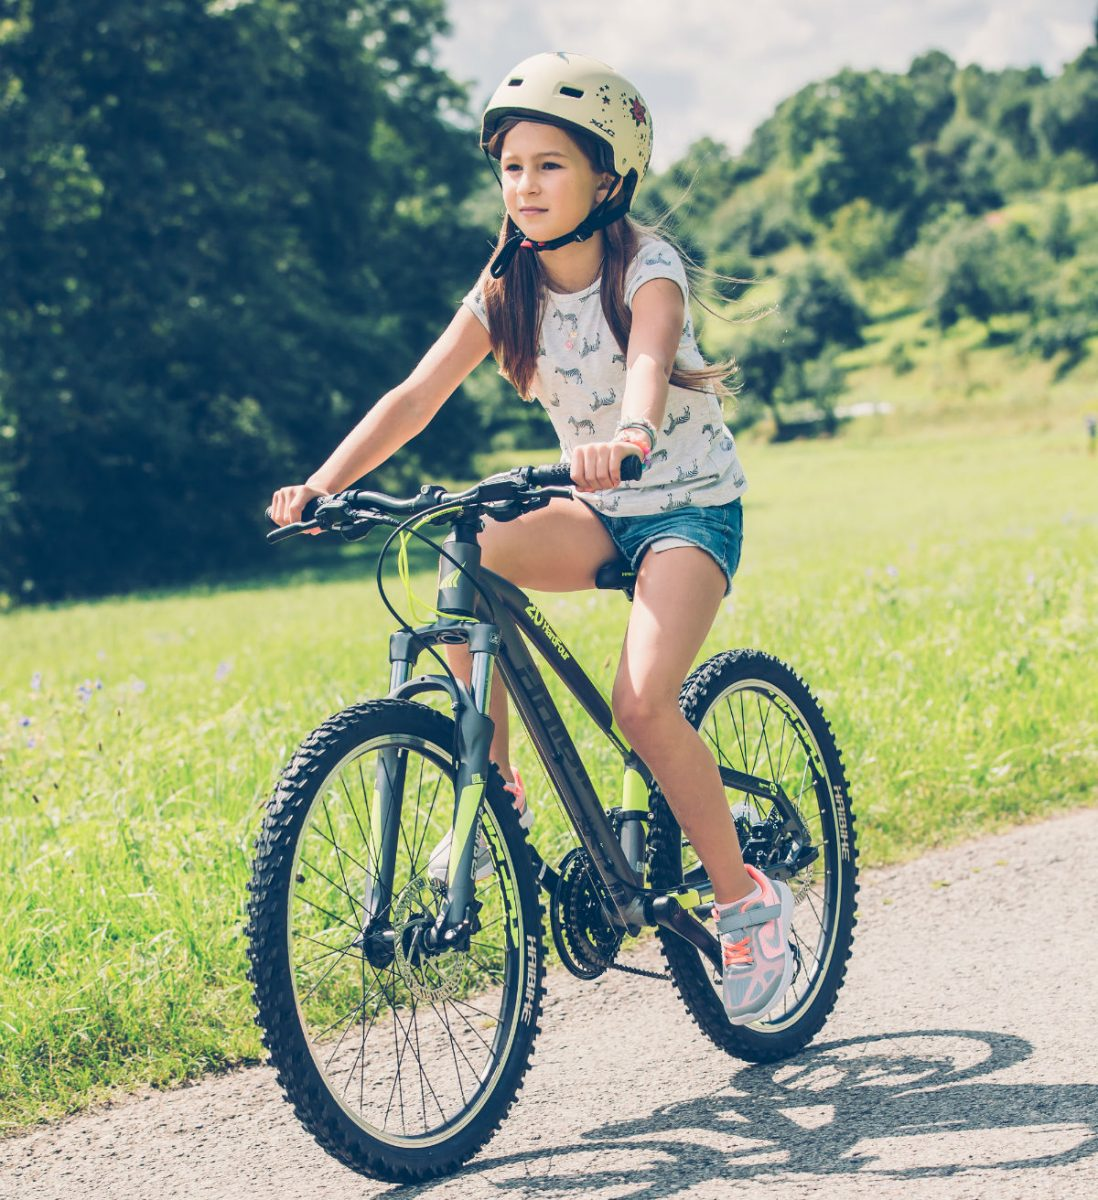 Never buy a helmet for a child to grow into, it has to fit perfectly. A bicycle helmet which is too loosely fitted will offer only a fraction of the protection you'd otherwise expect.